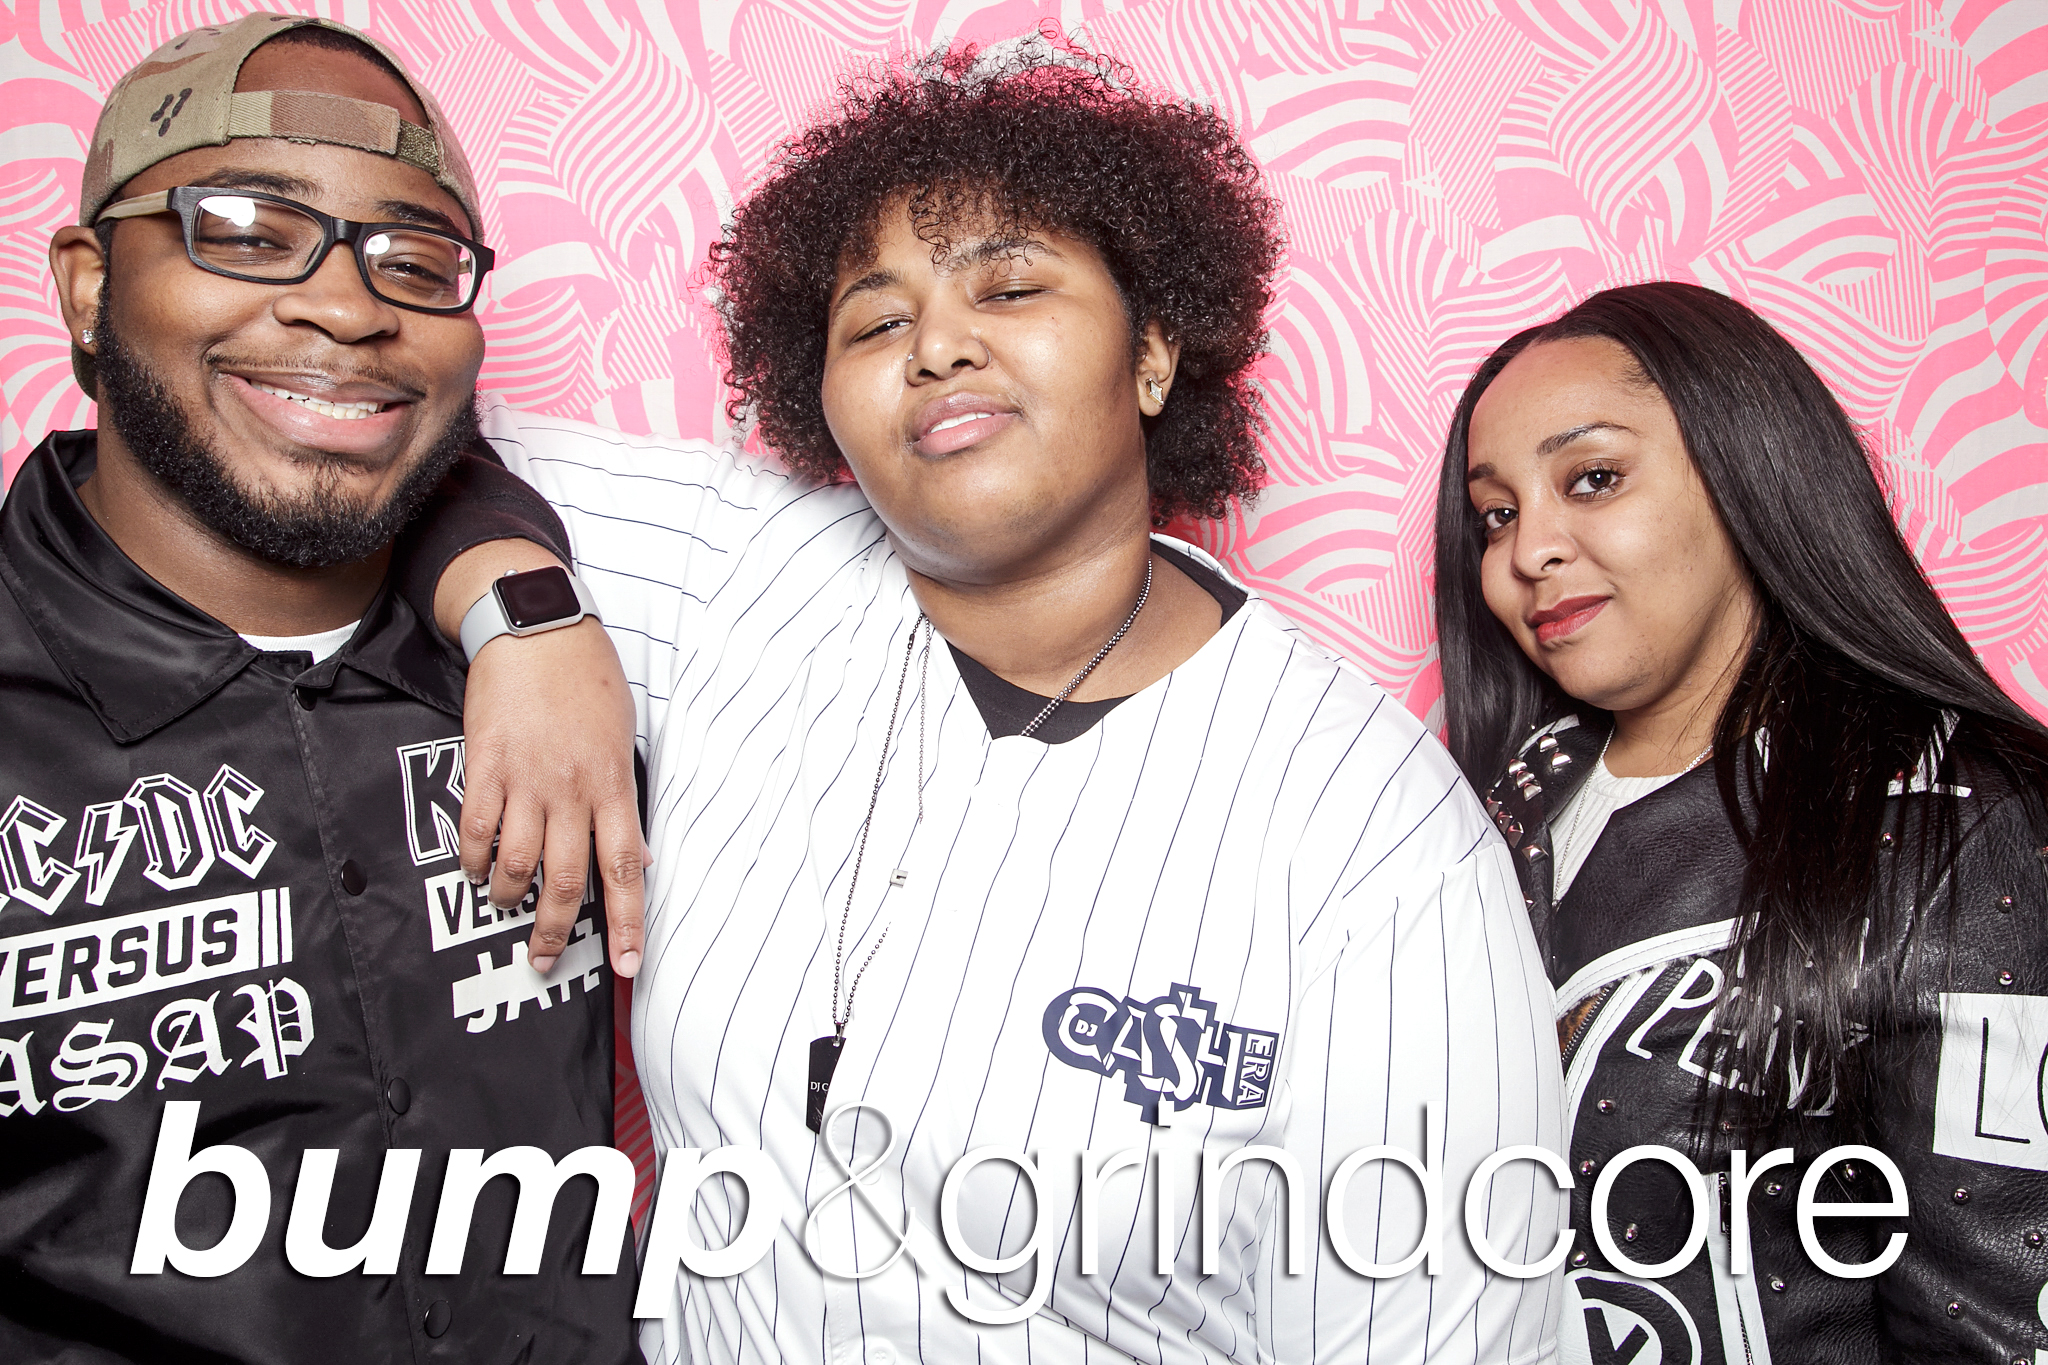 glitterguts portrait booth photos from bump and grindcore at beauty bar chicago, december 2018